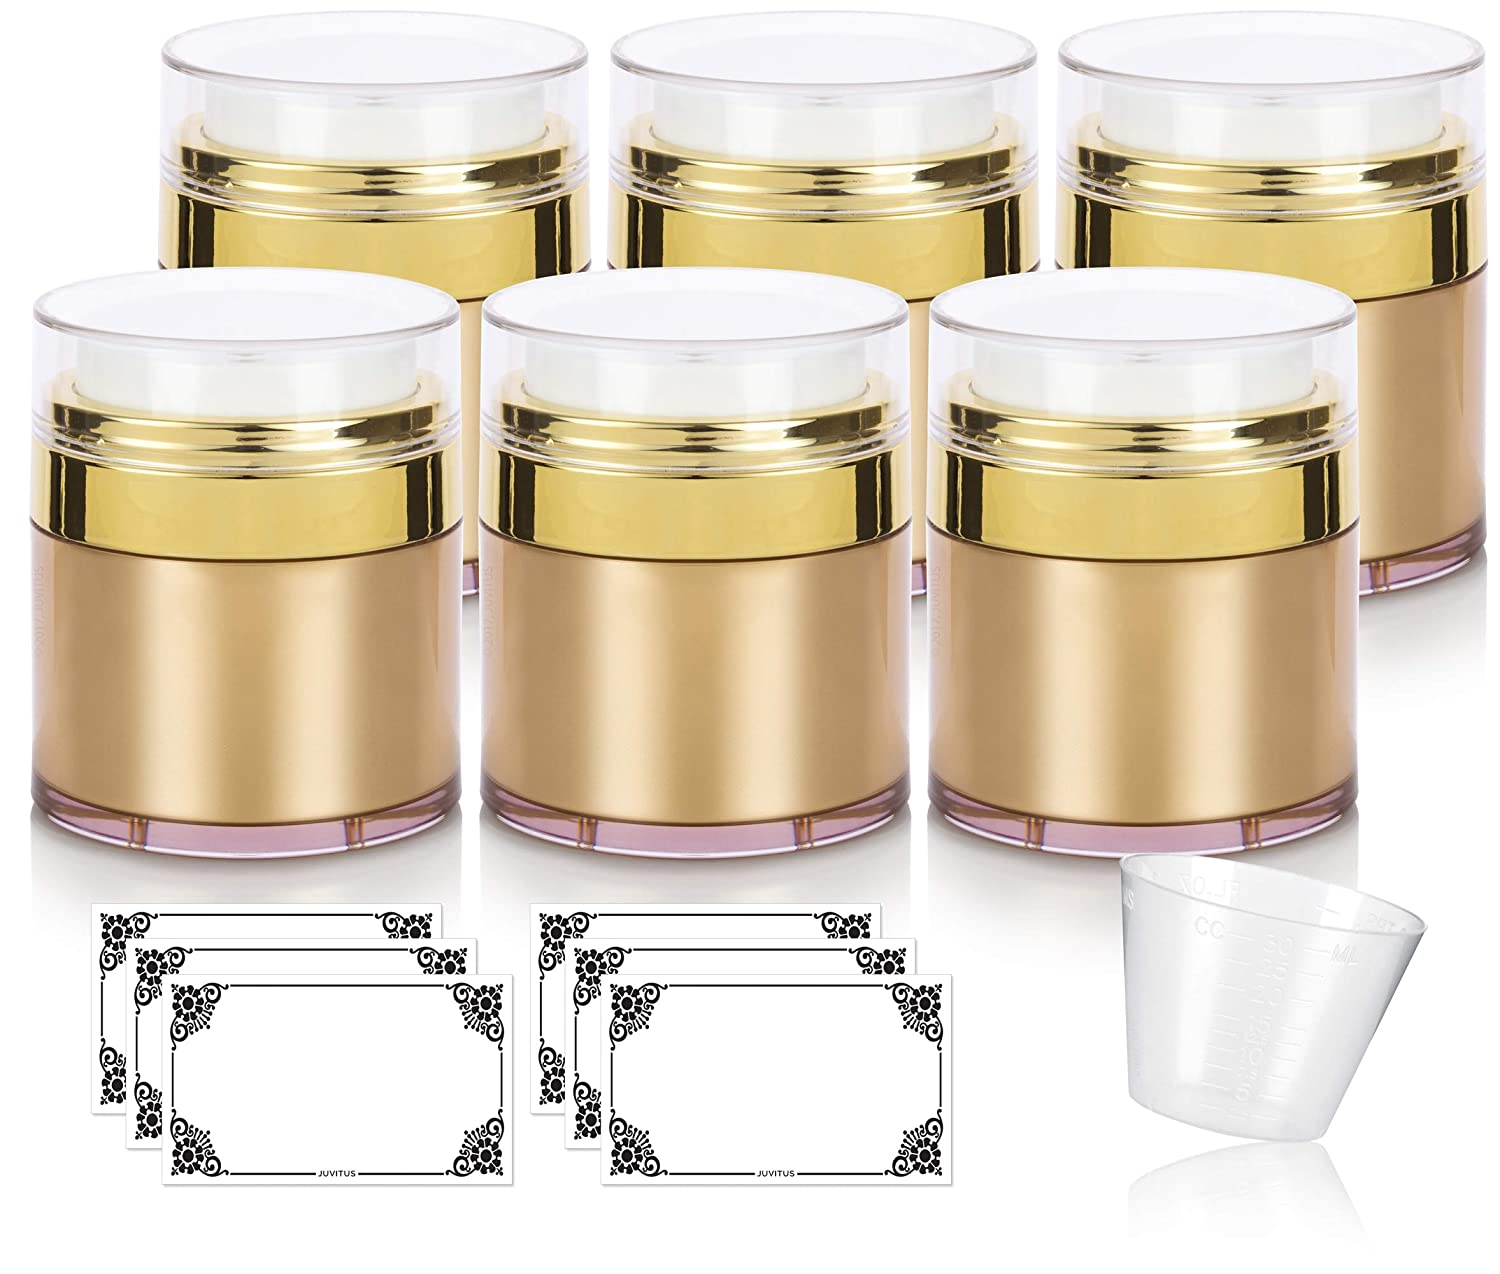 Gold Airless Refillable Jar 1.7 oz / 50 ml (6 pack) for Home or Travel, keeps out bacteria and air changing oxidation from your skin care products - durable, leak proof, and shatterproof